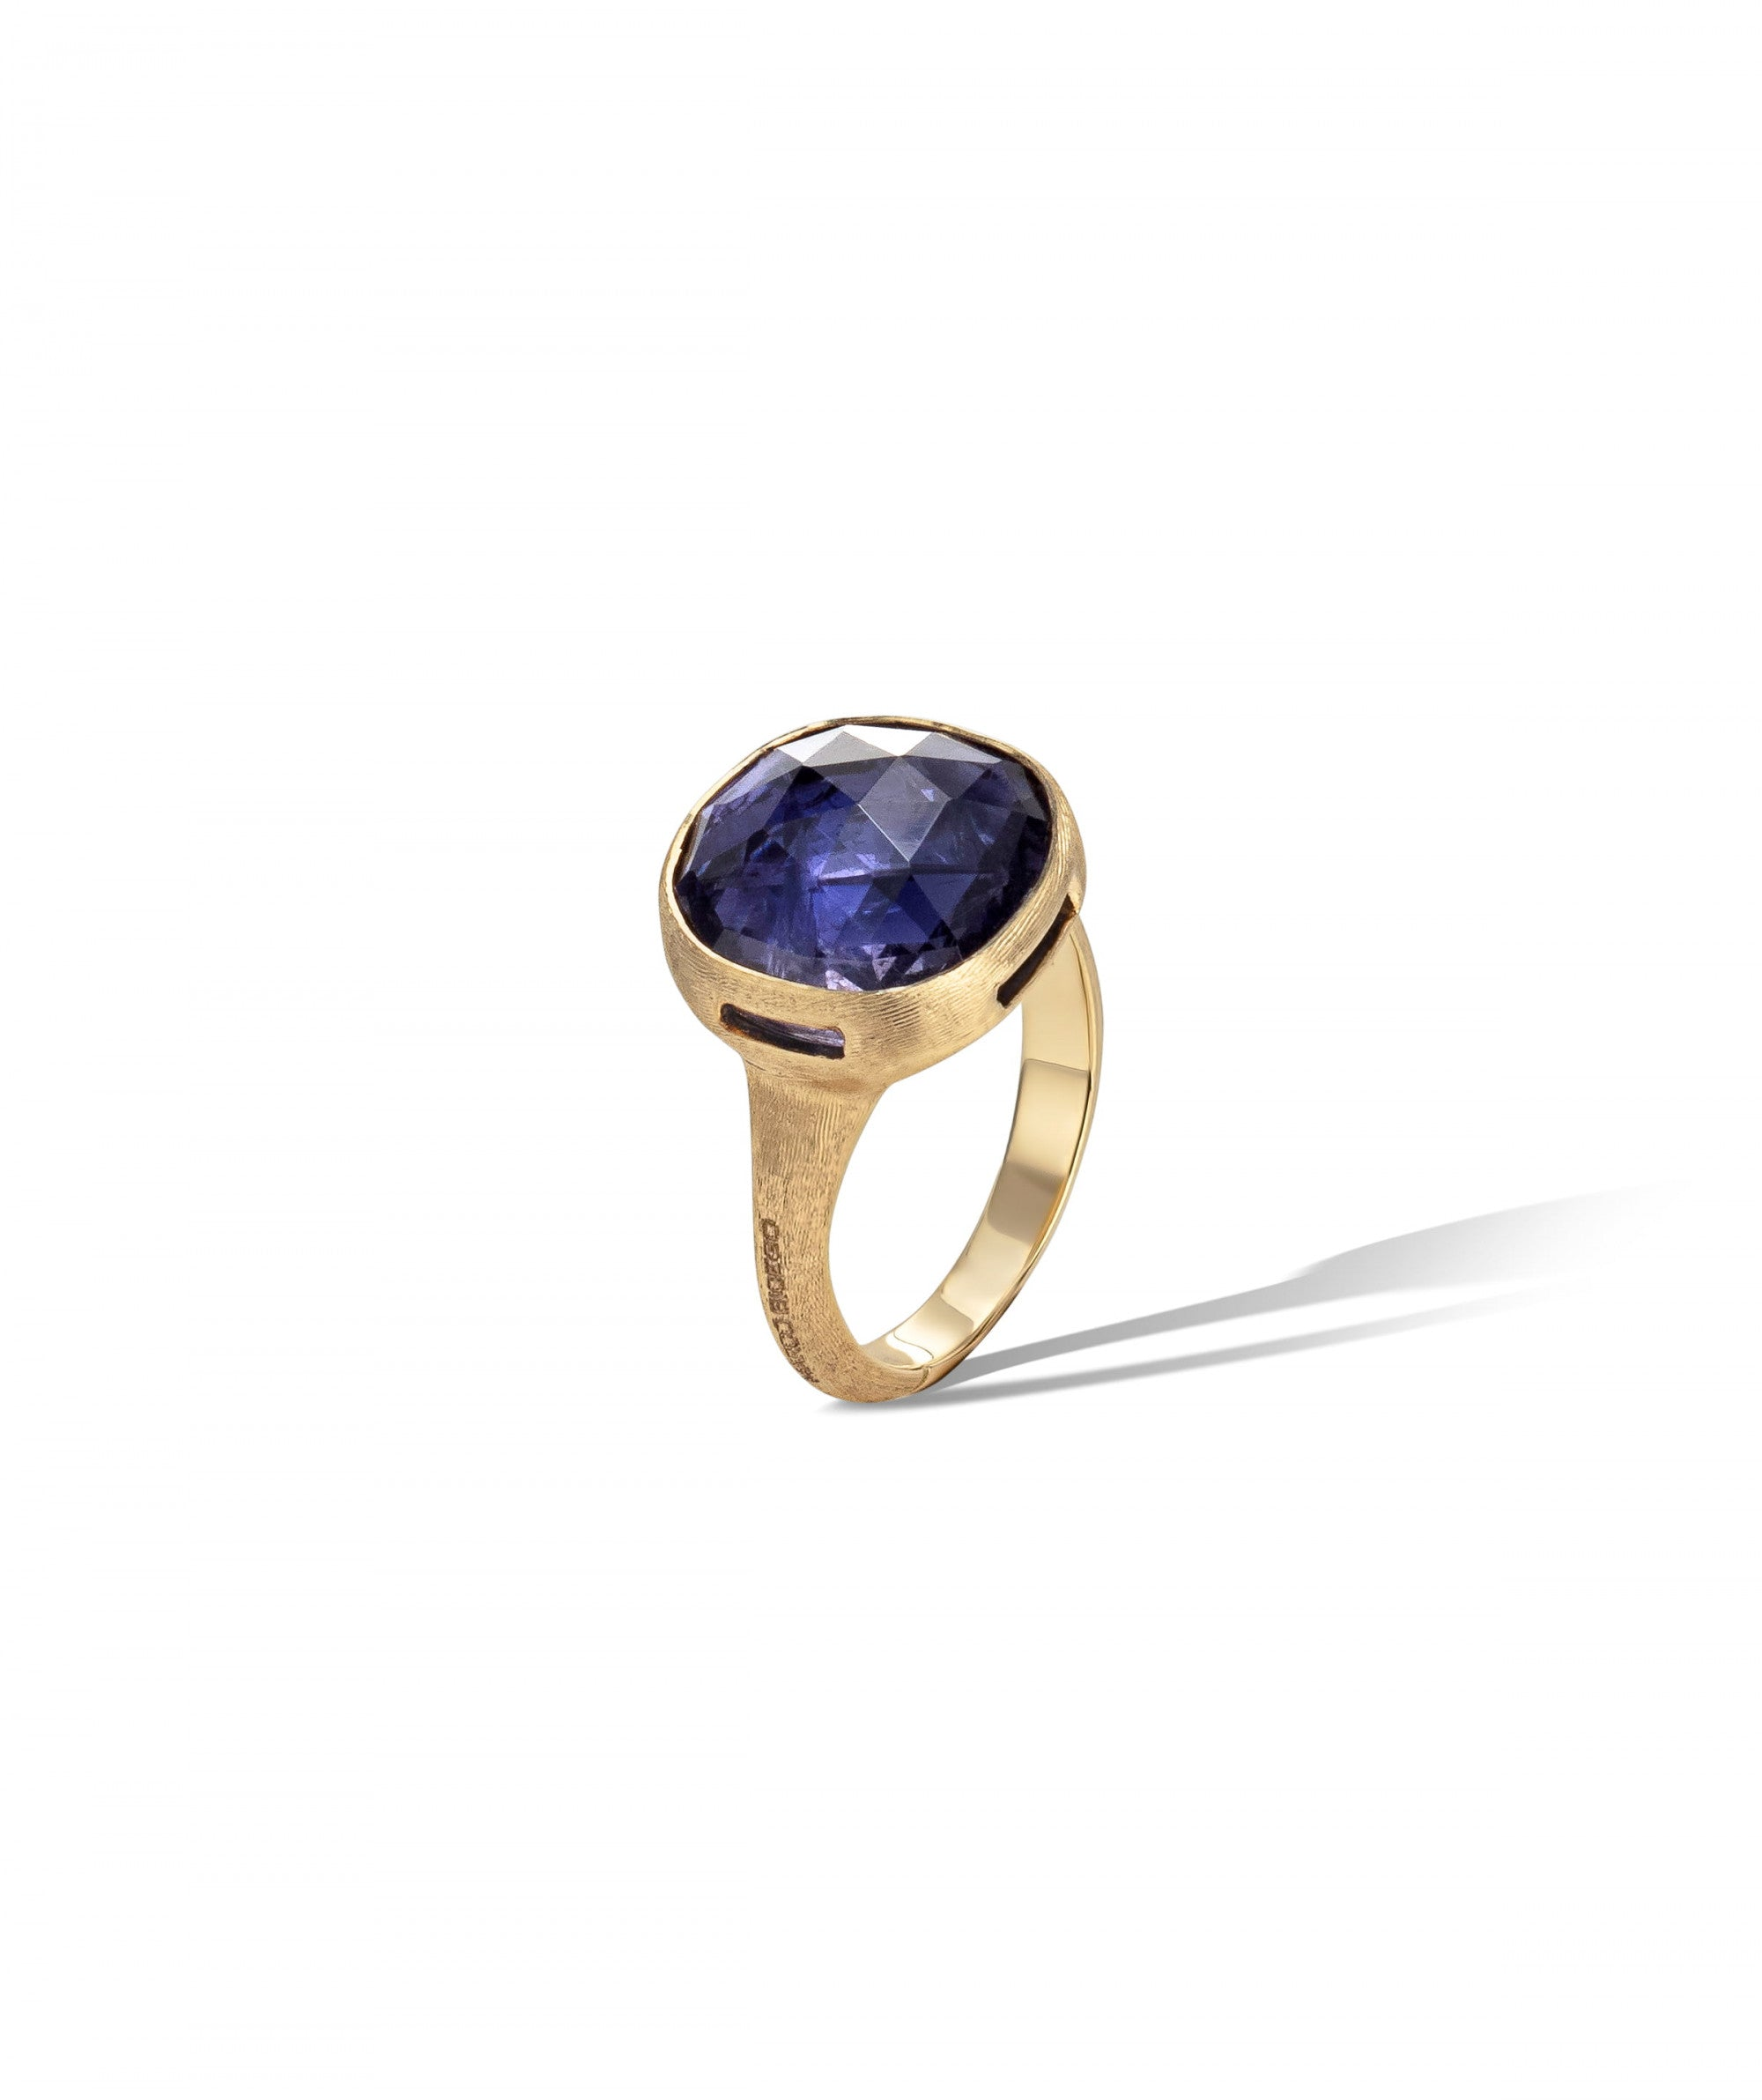 Jaipur Colour Ring in 18k Yellow Gold with Iolite Large - Orsini Jewellers NZ